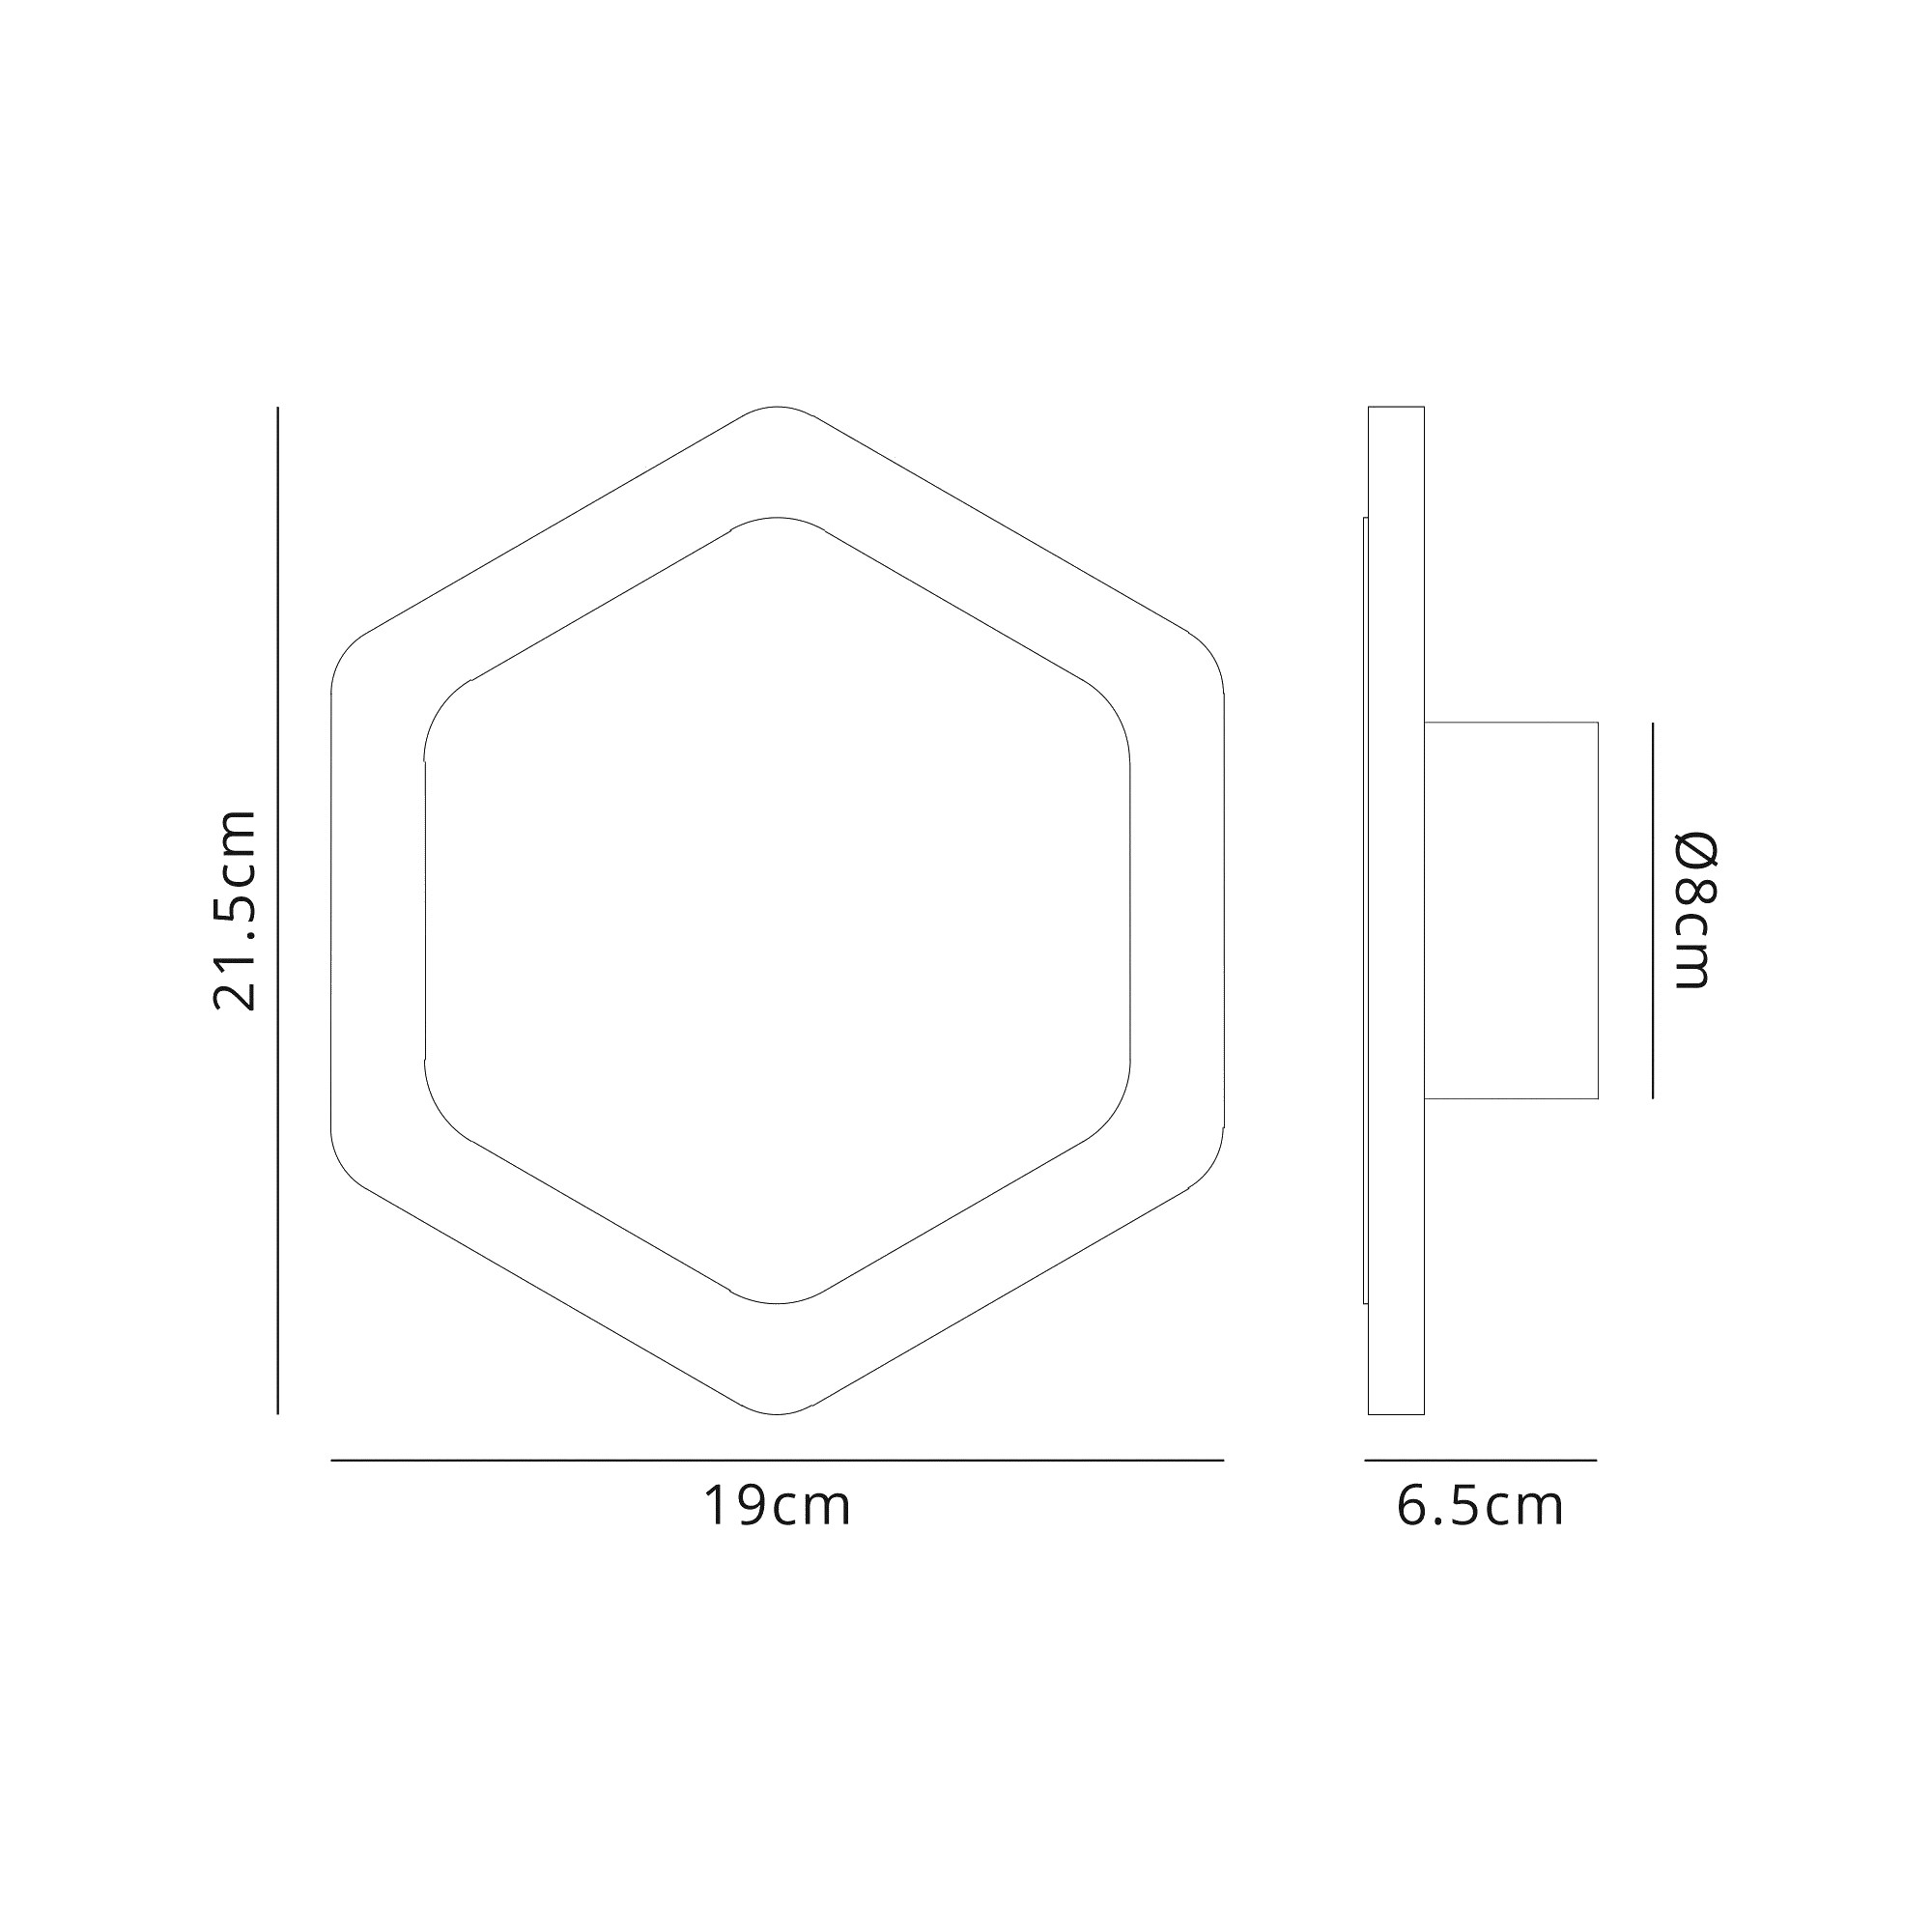 Magnetic Base Wall Lamp, 12W LED 3000K 498lm, 15/19cm Vertical Hexagonal Centre, Frosted Diffuser